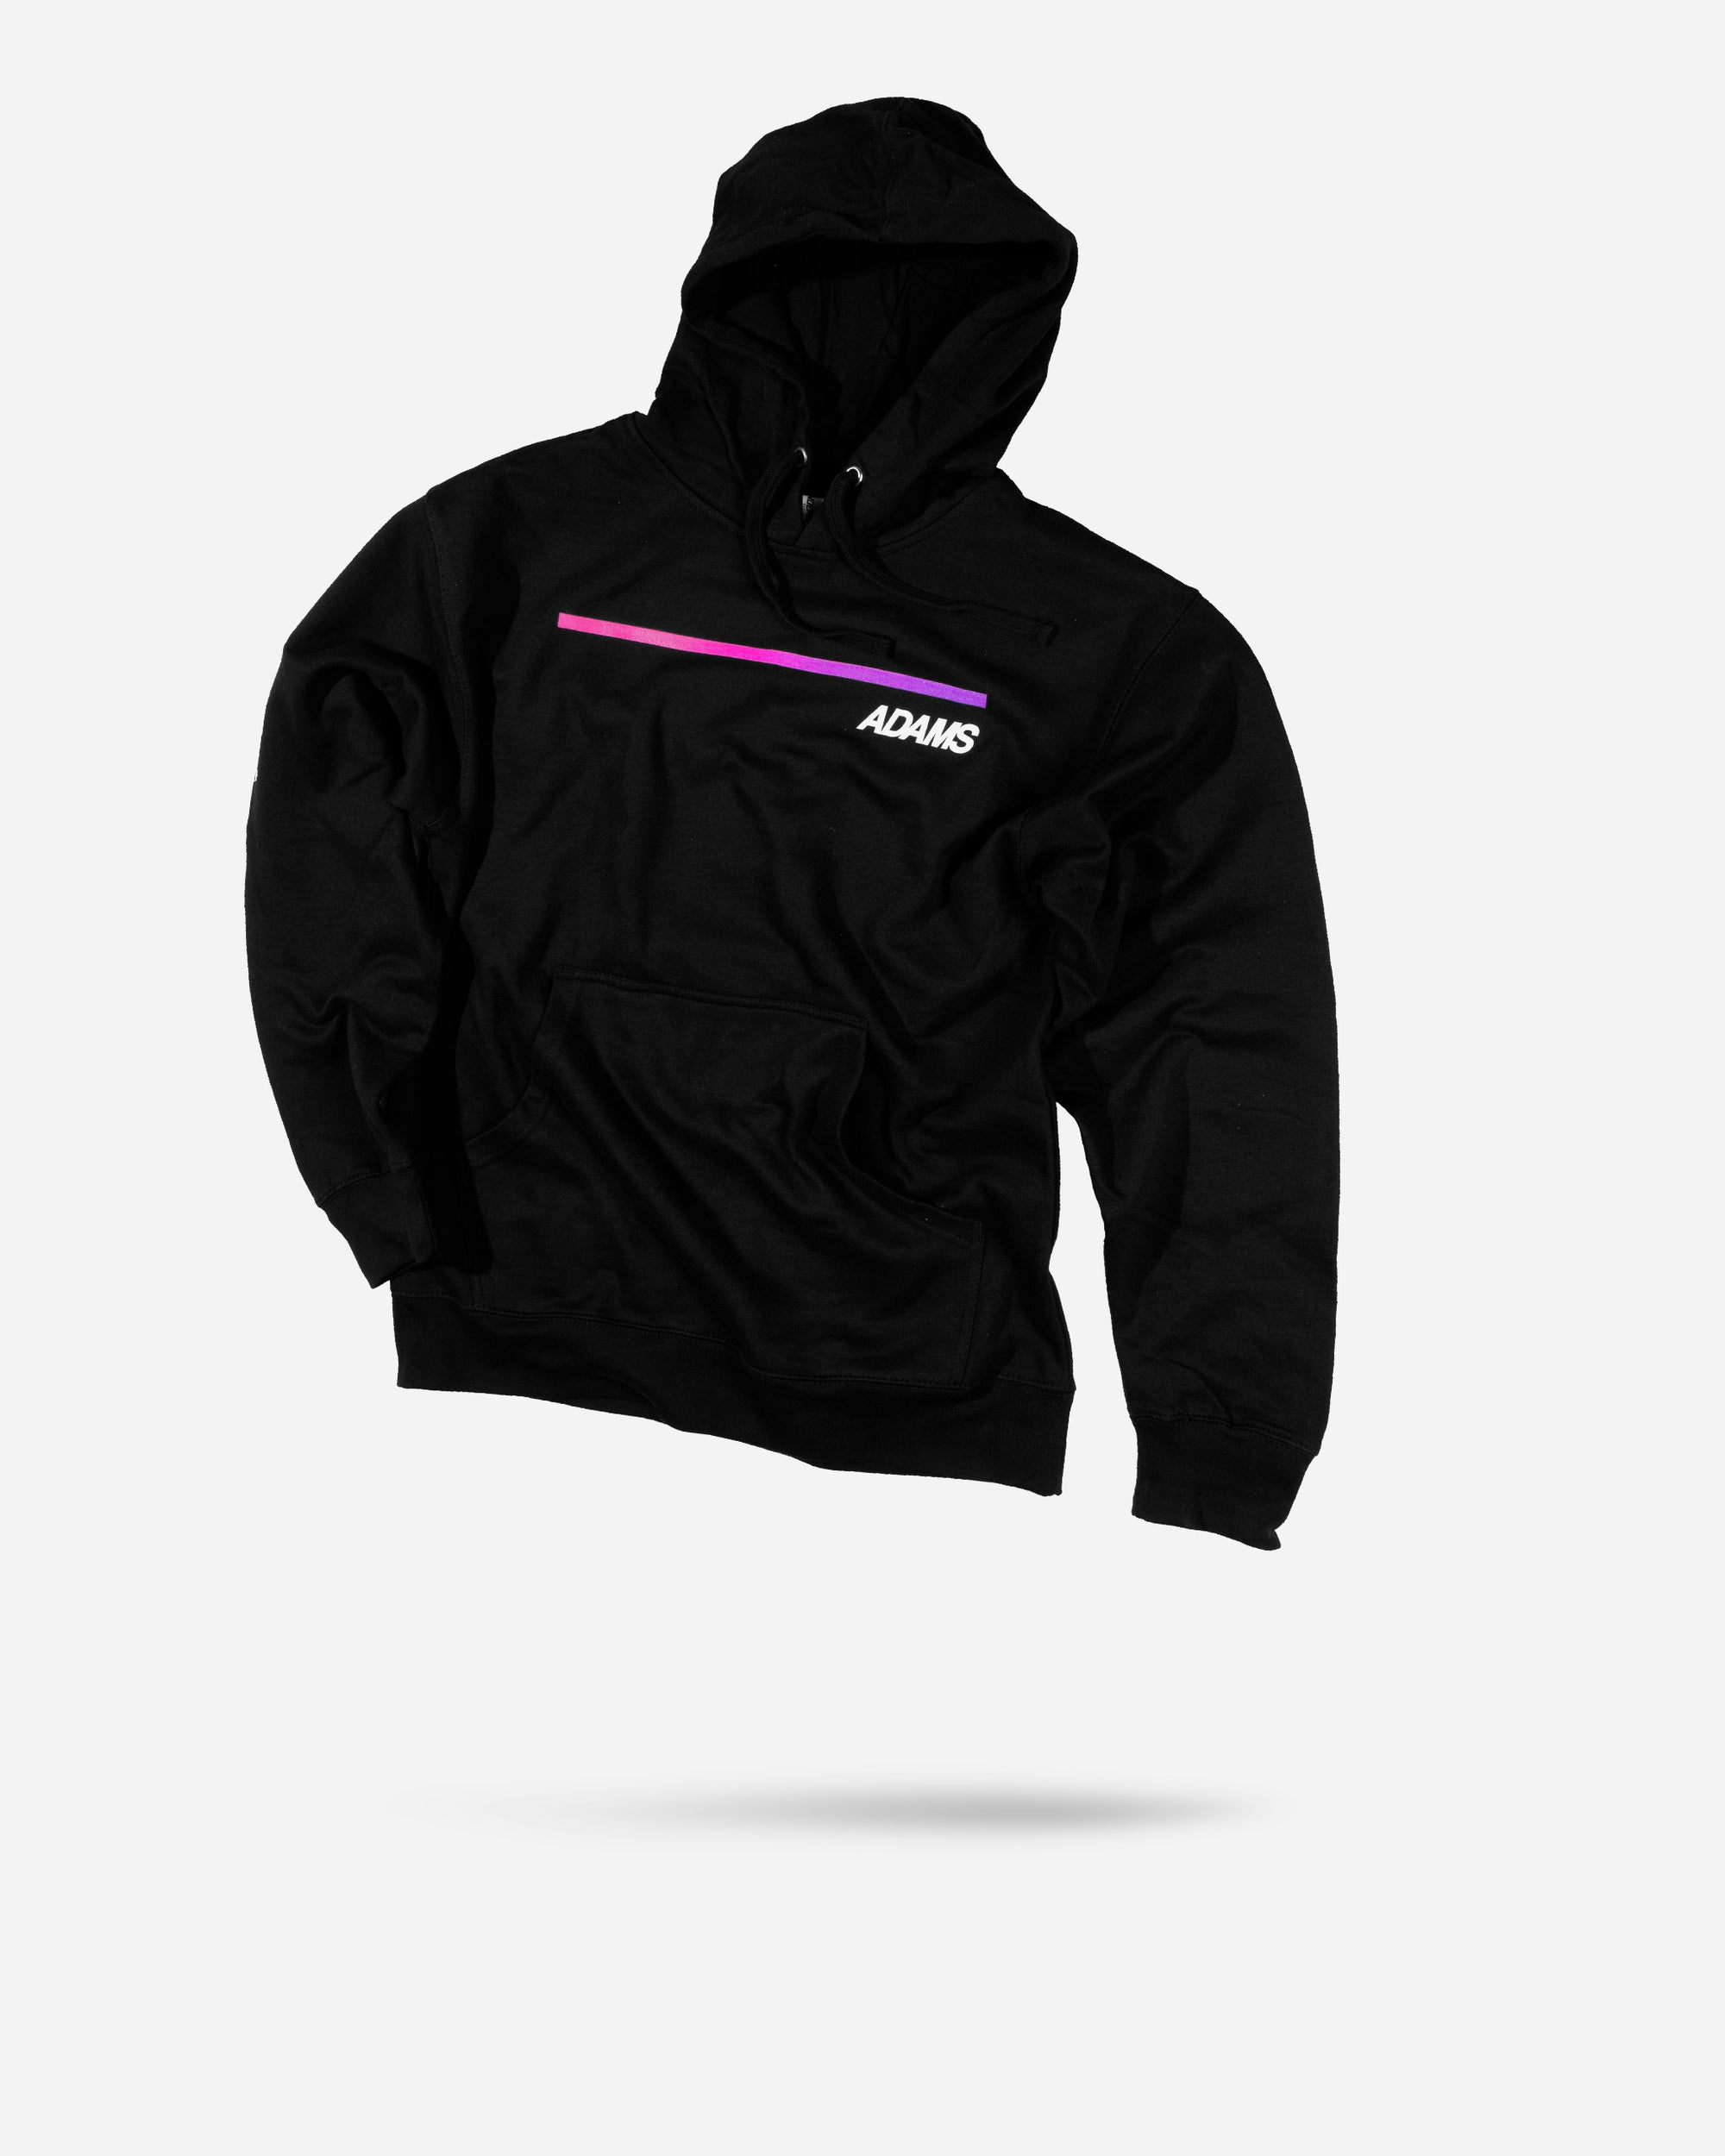 Adam's Color Shift Purple-Pink Hoodie